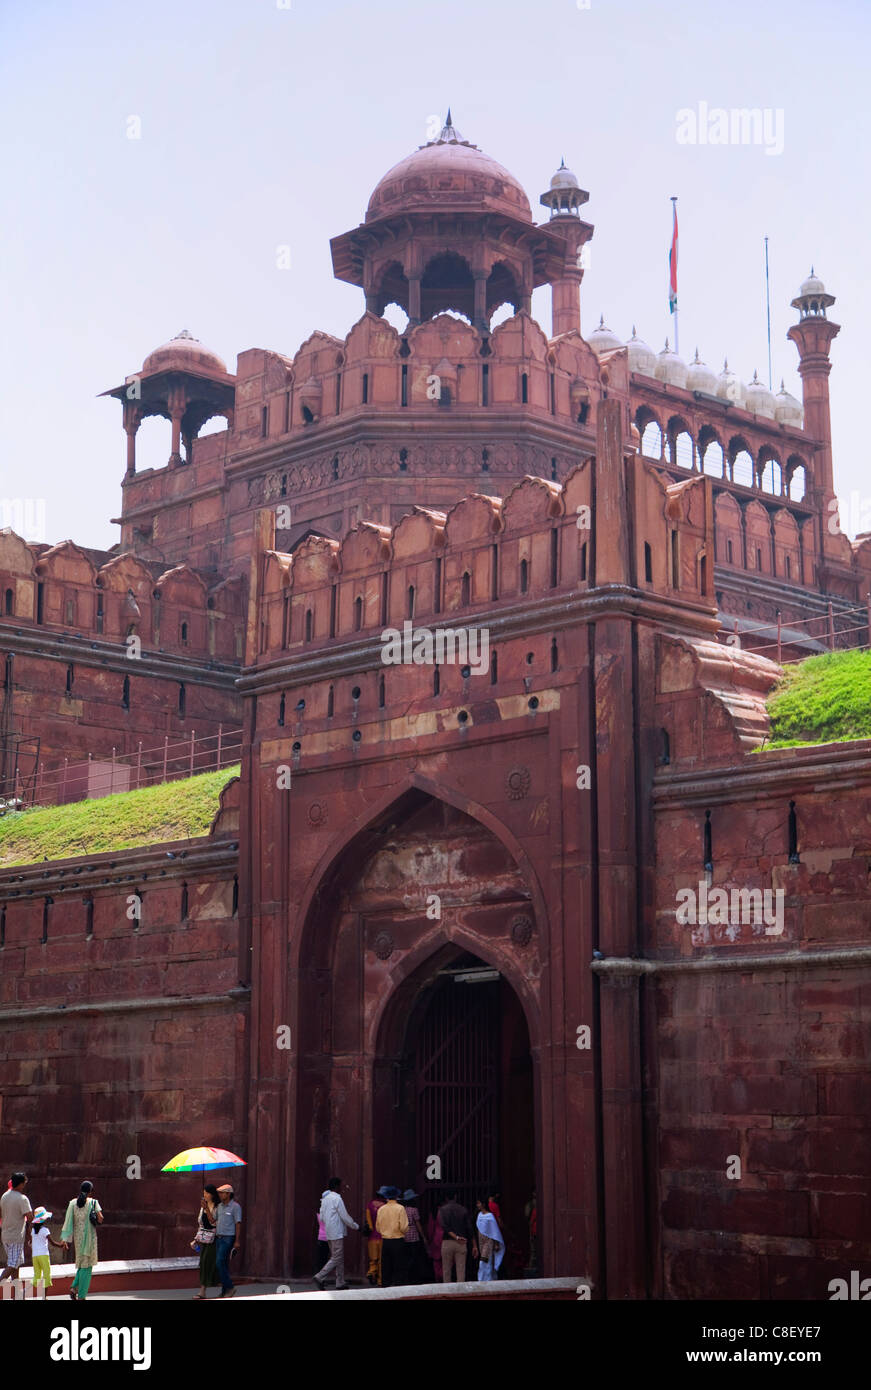 Tourists at Lahore Gate, Red Fort, UNESCO World Heritage Site, Old Delhi, India - Stock Image